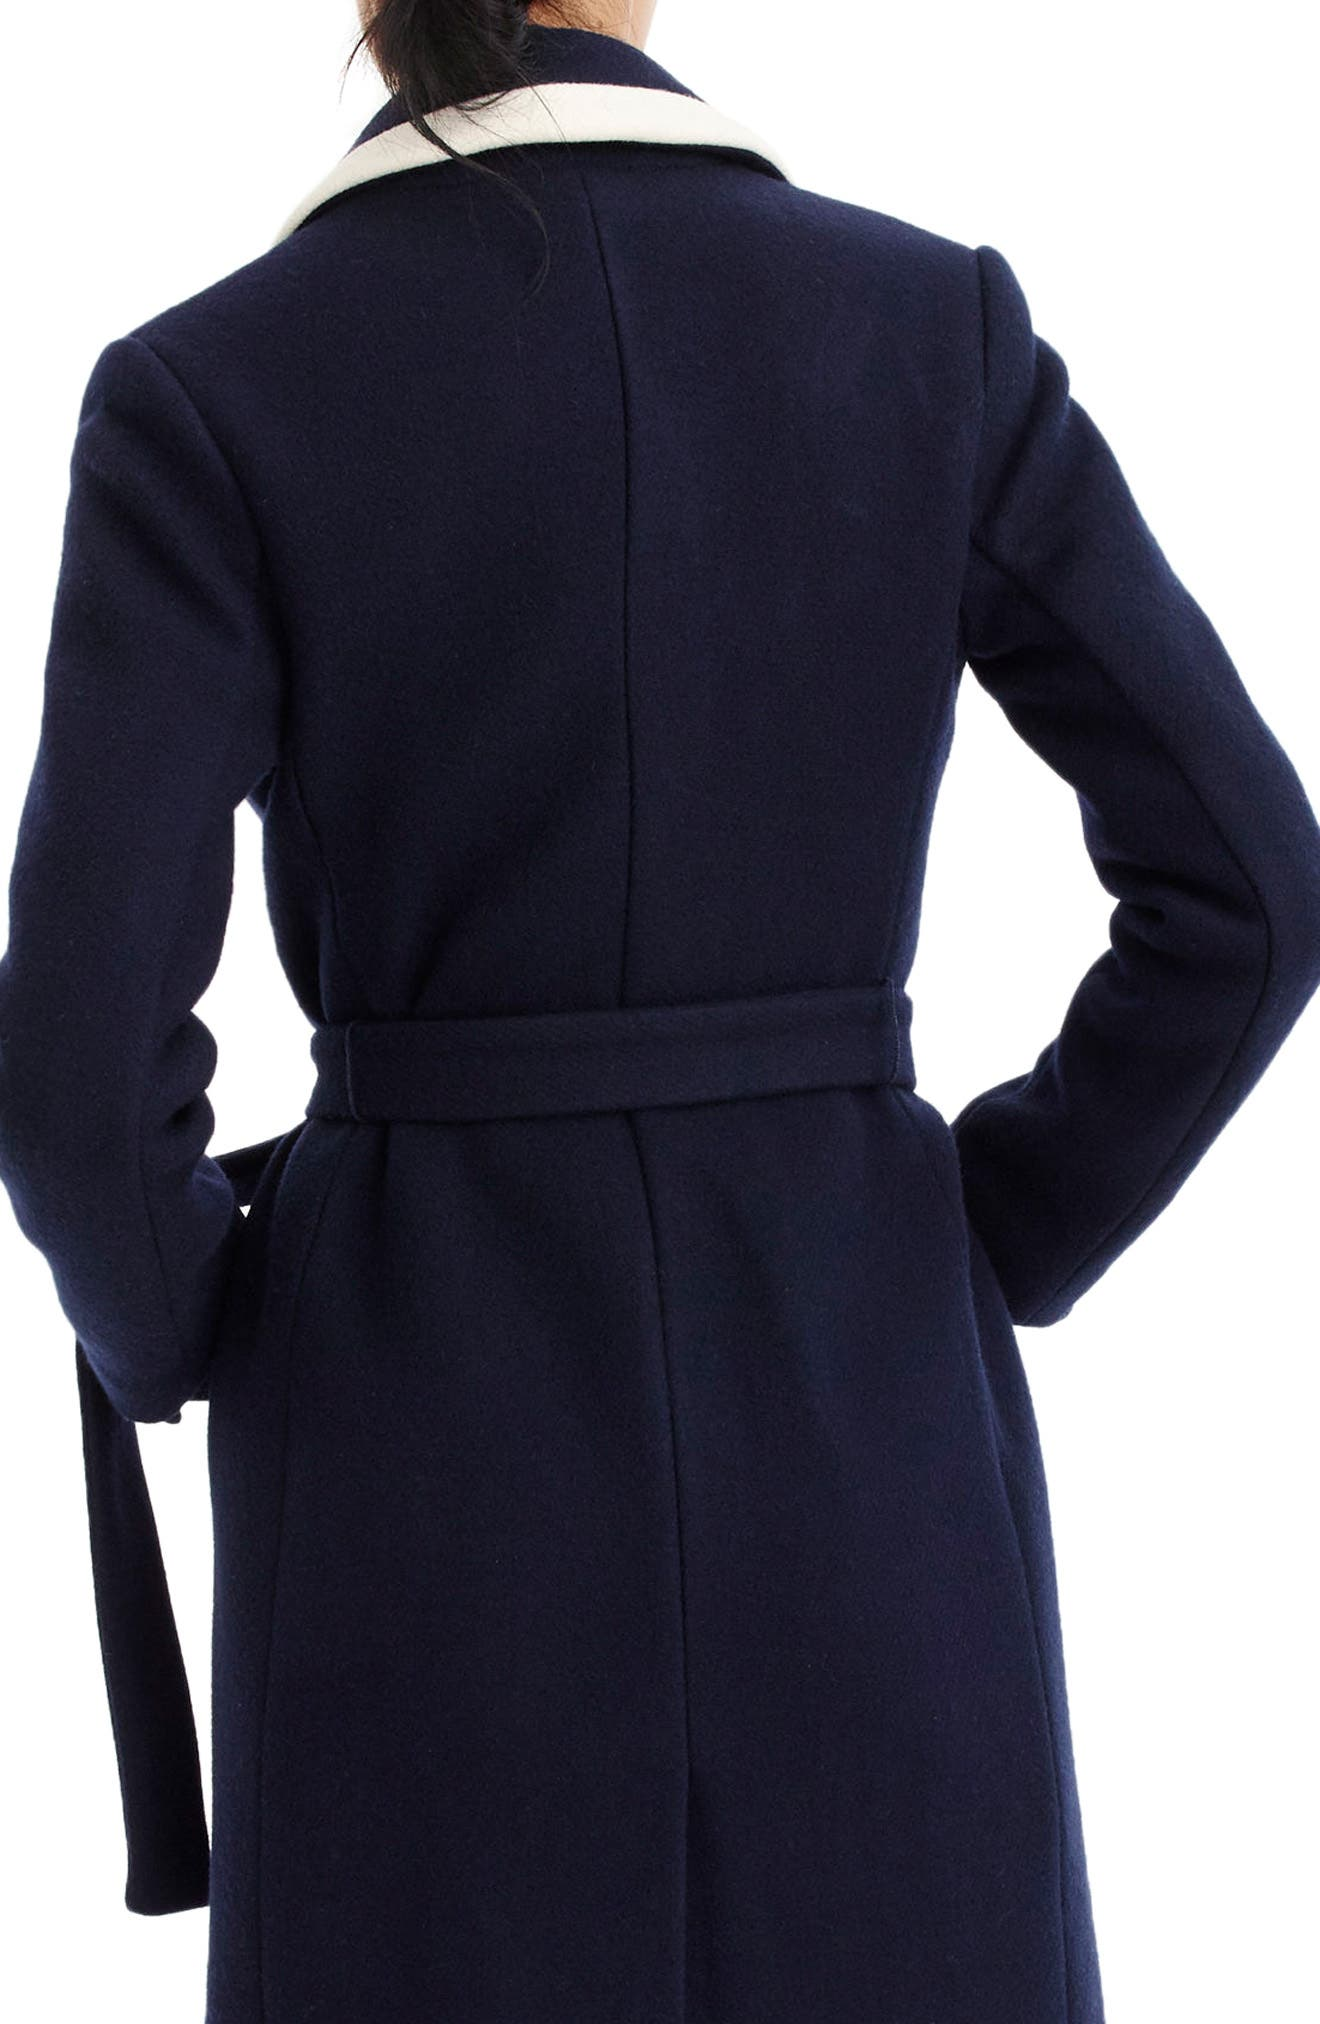 J.CREW,                             Tipped Wrapped Stadium Cloth Coat,                             Alternate thumbnail 2, color,                             400